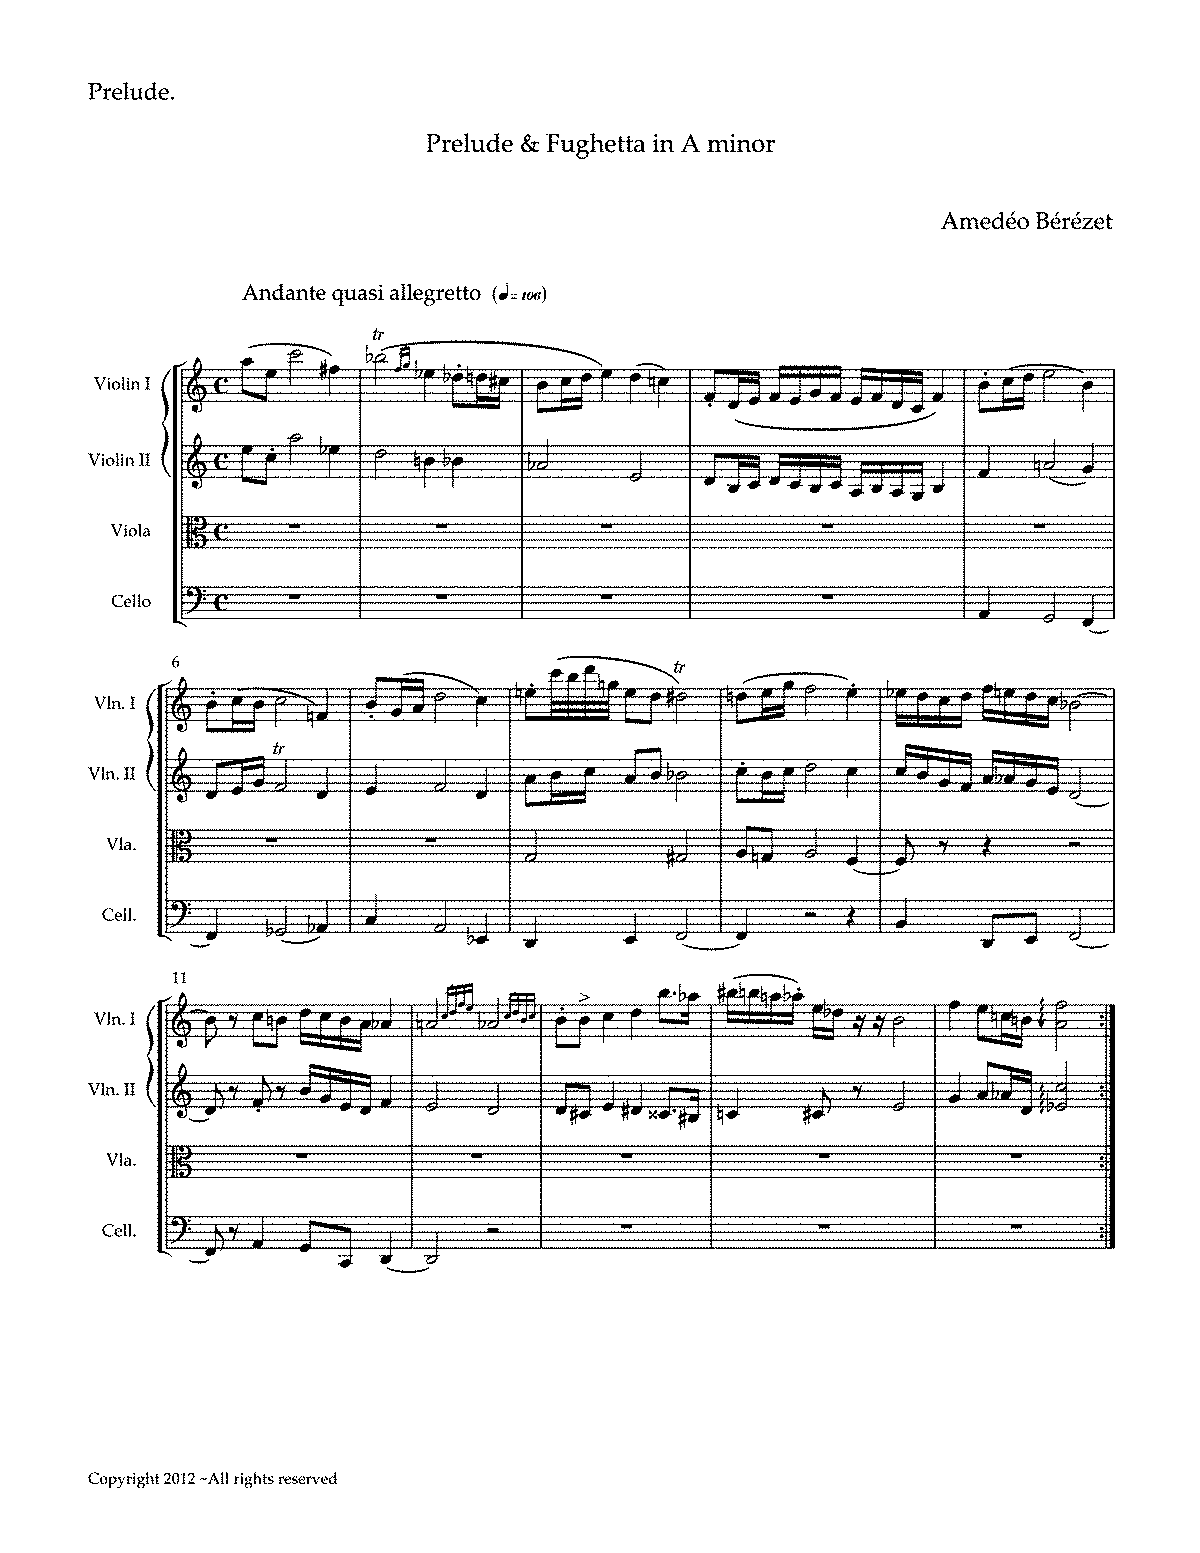 PMLP401448-Prelude & Fughetta in A minor by Amedéo Bérézet.pdf